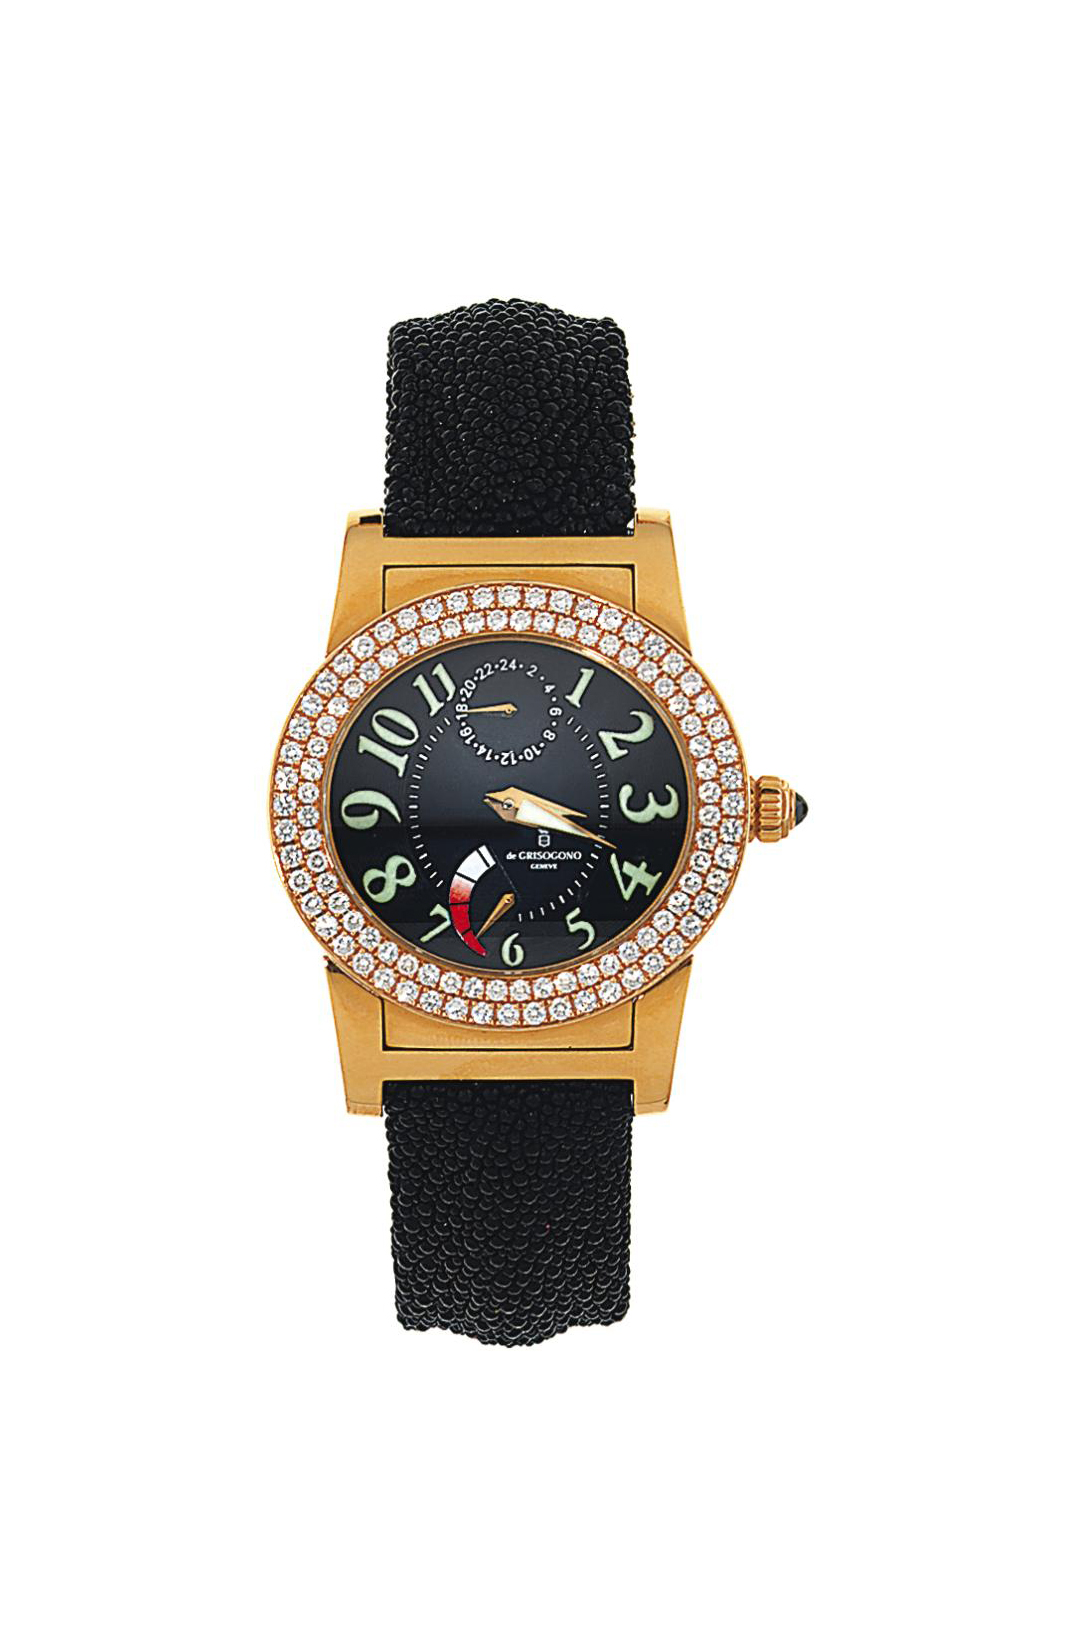 An 18ct pink gold dual time 'I